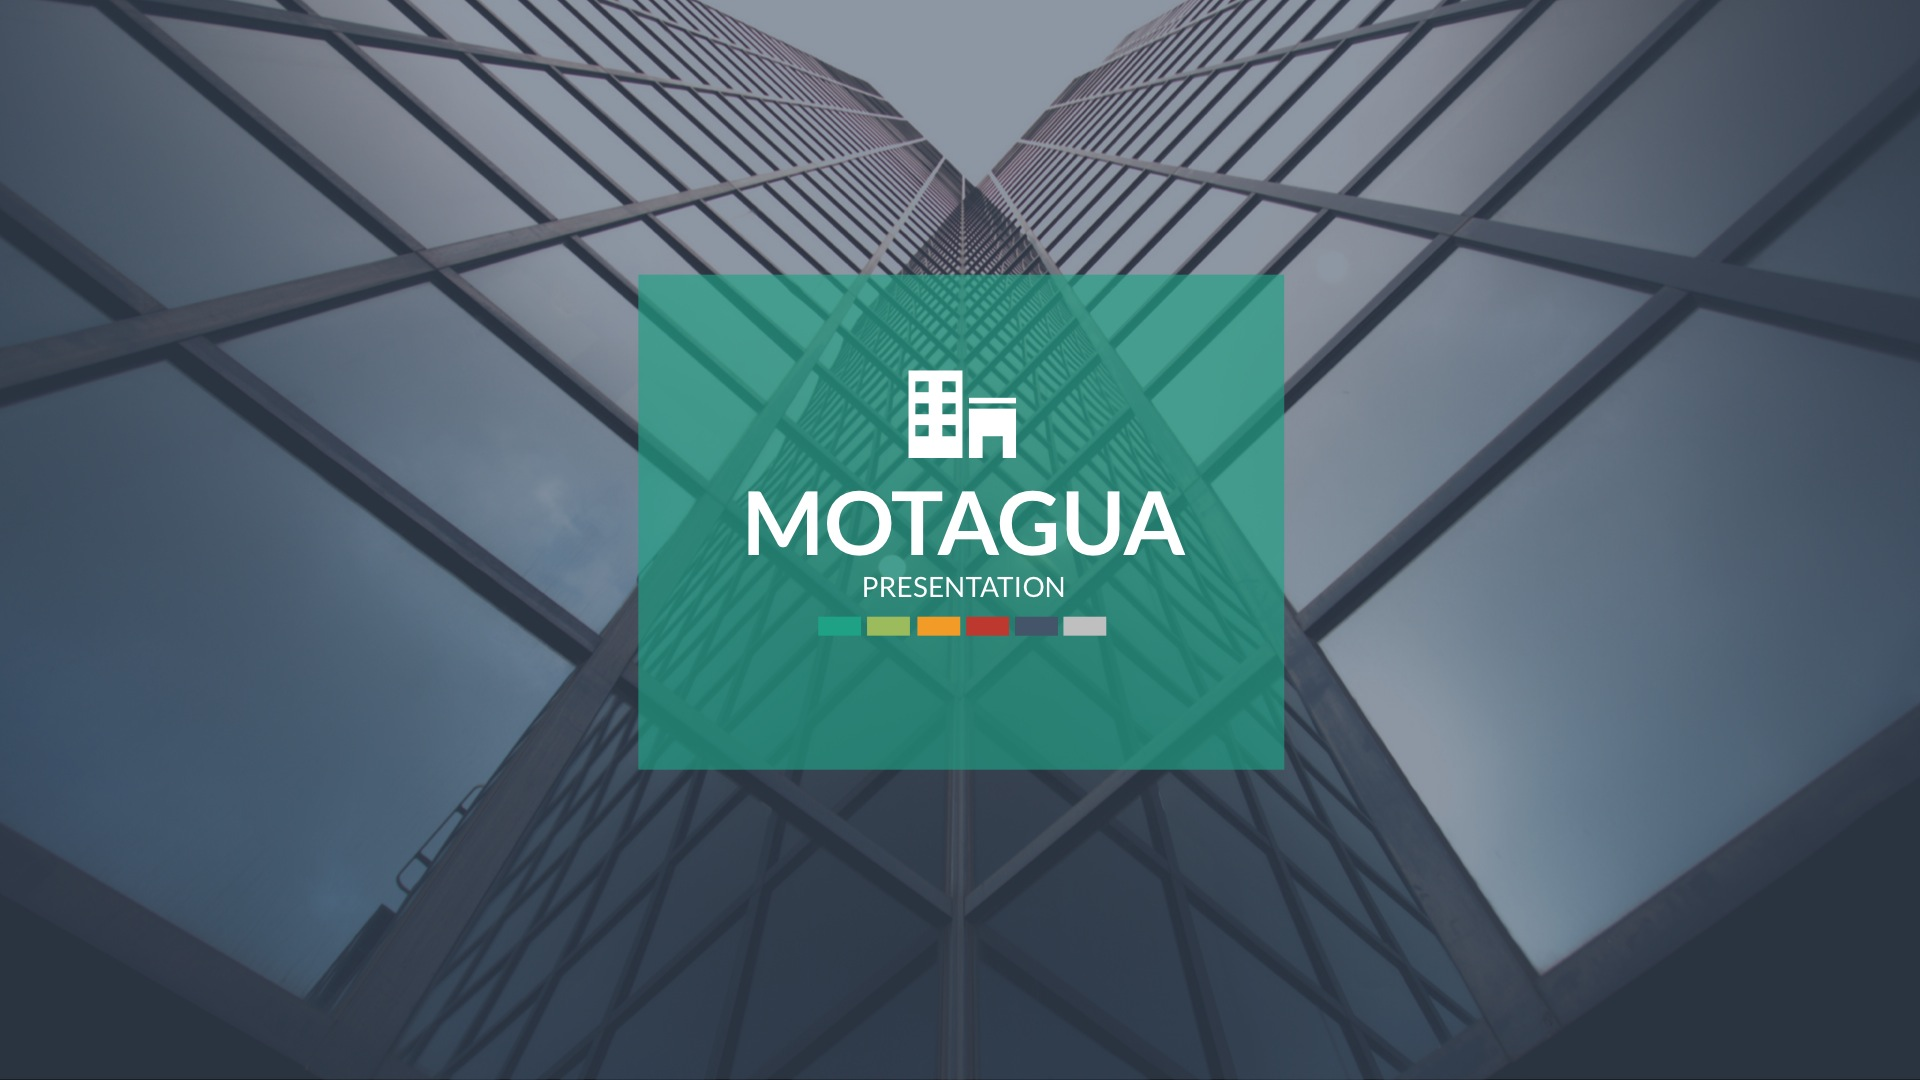 10 powerpoint business templates to wow your audience the multipurpose powerpoint business template from motagua accmission Images